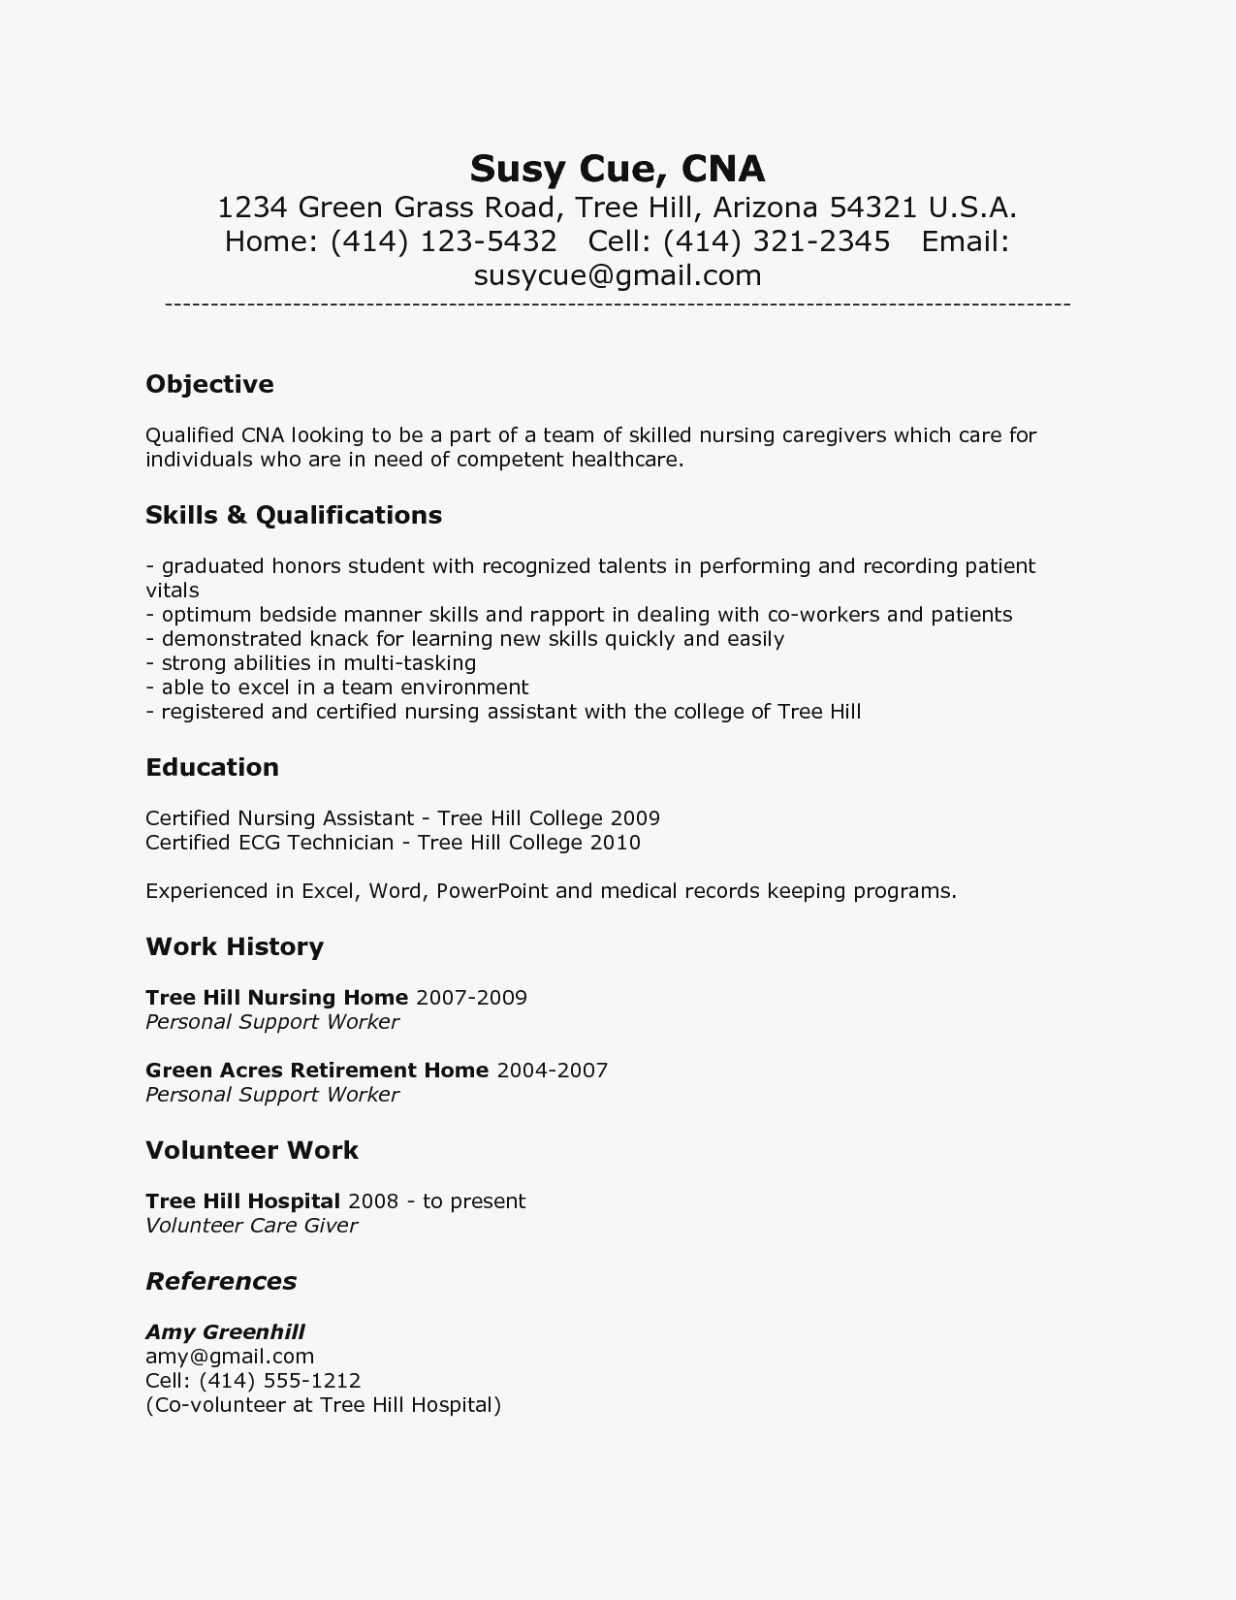 Resumes for Cna Position Lovely the Modern Rules Cna Qualifications